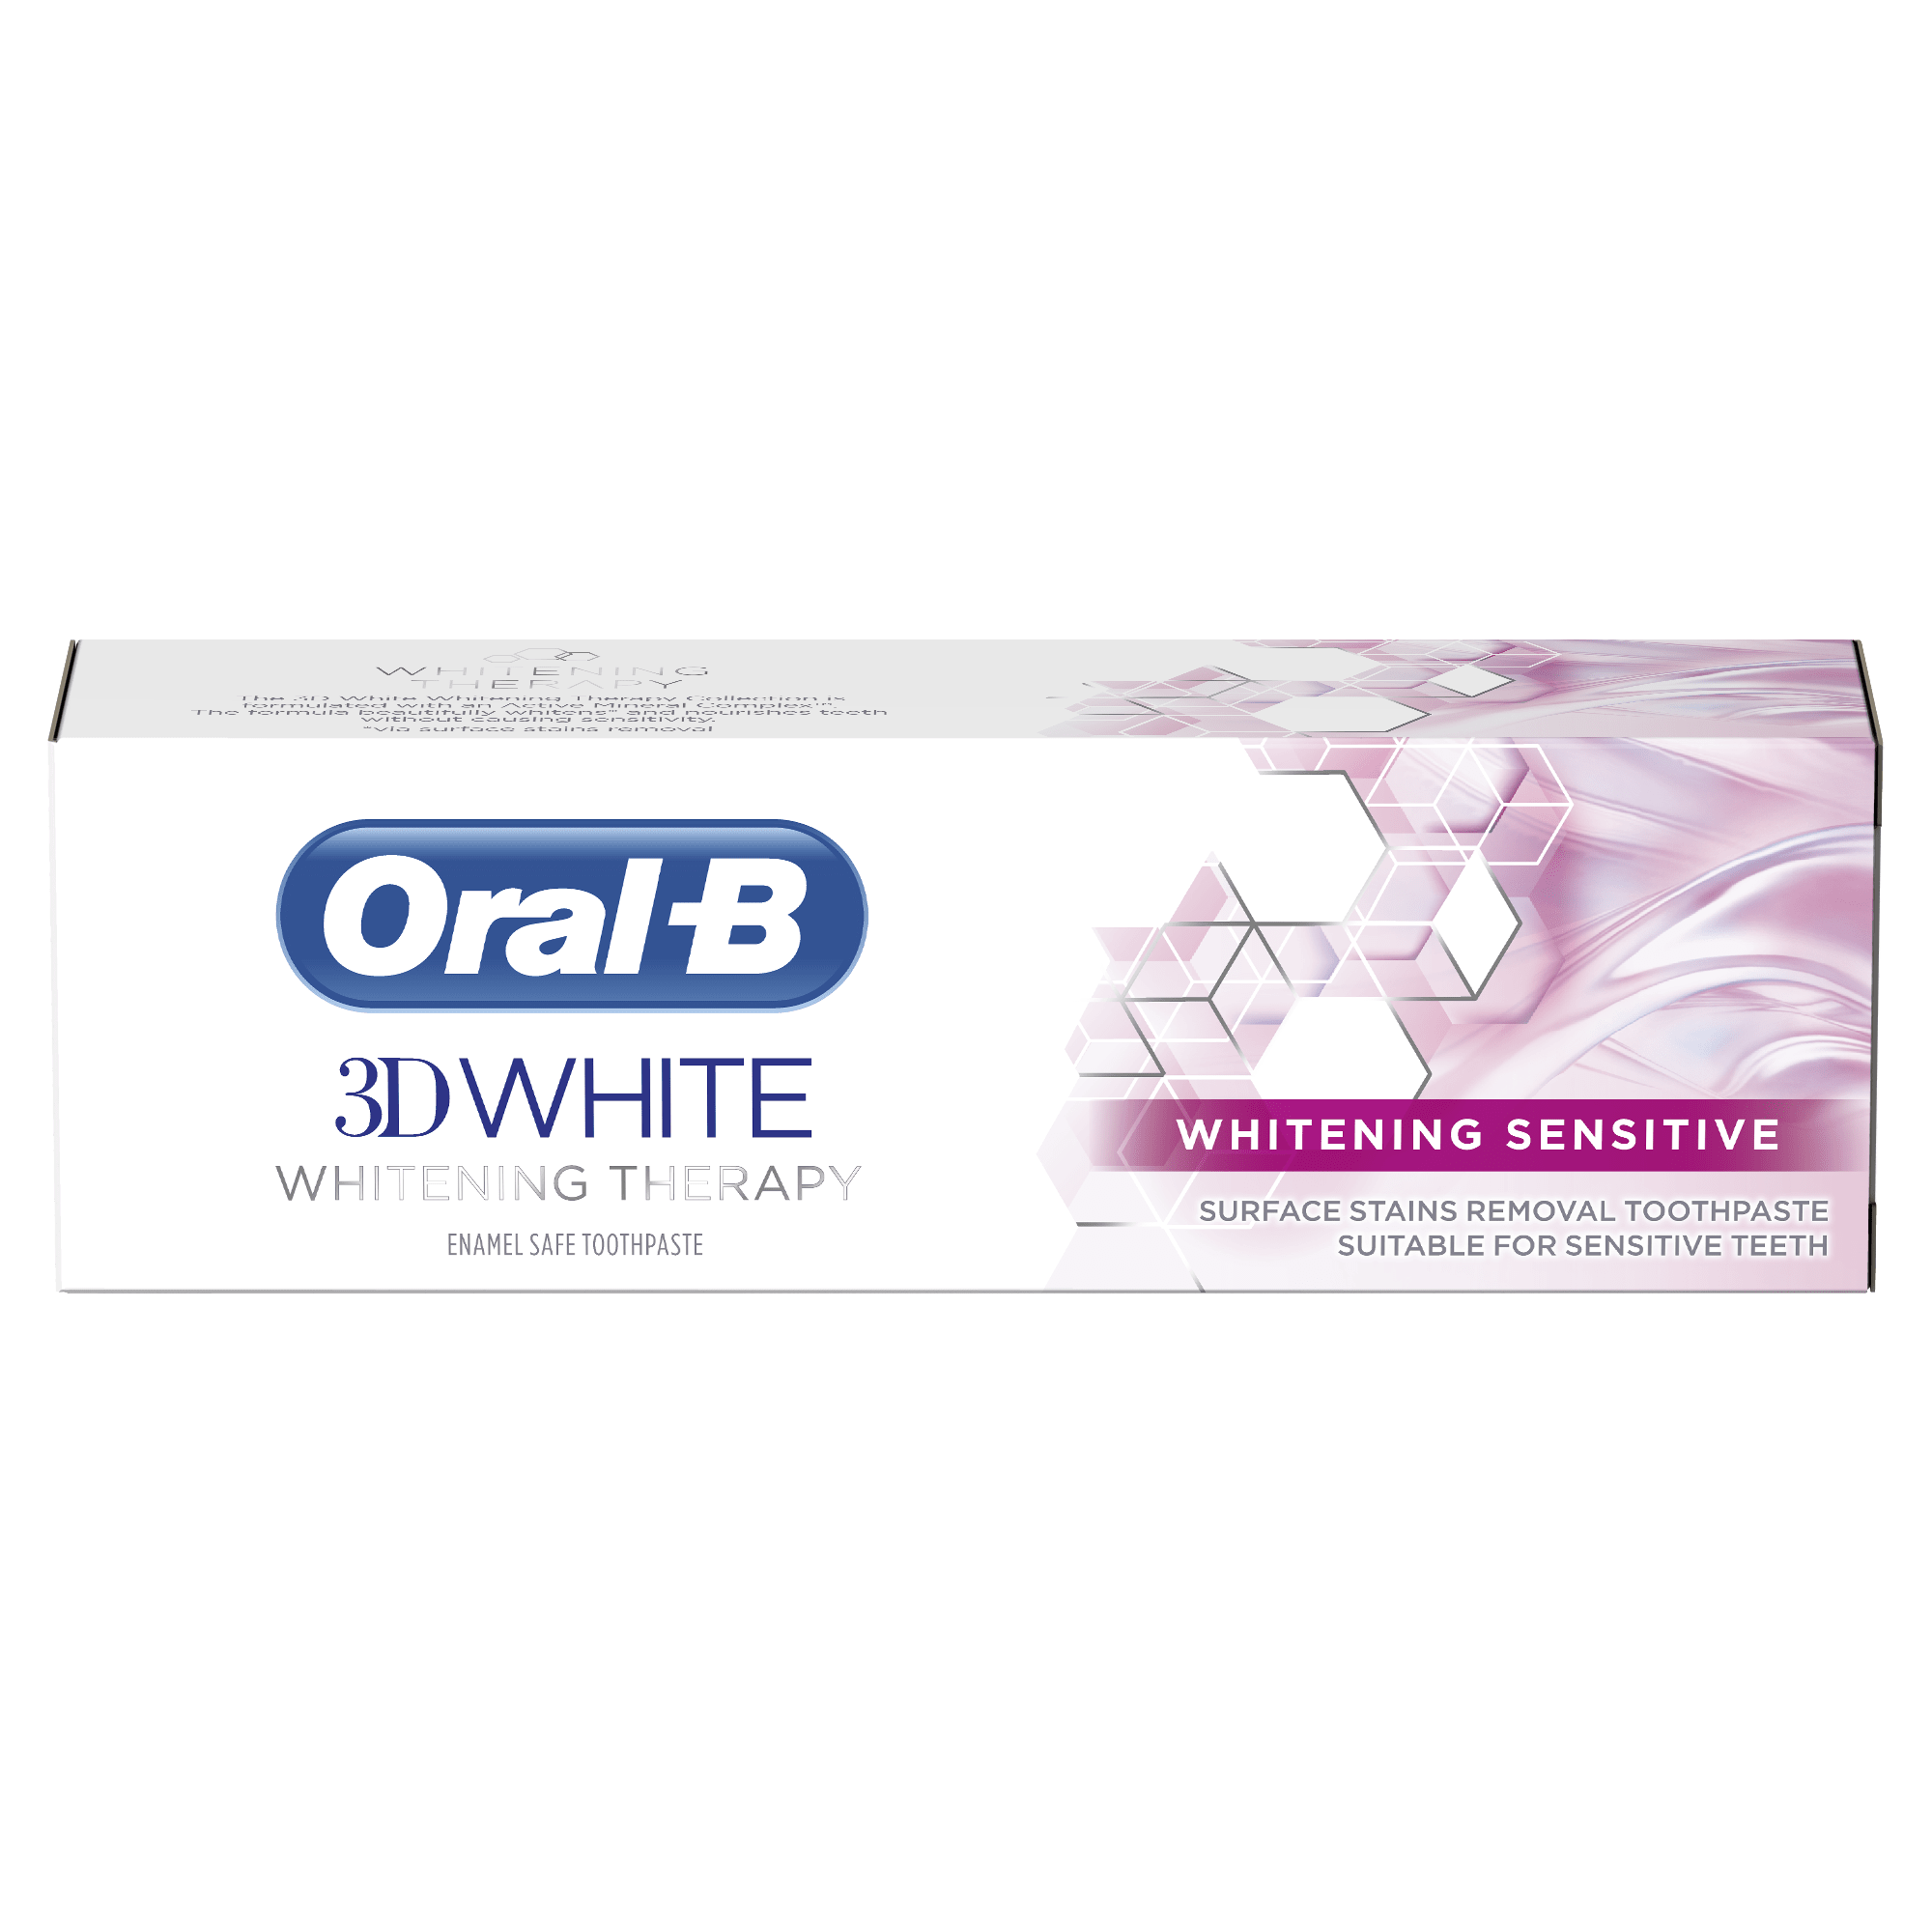 Oral-B 3D White Whitening Therapy Sensitive teeth